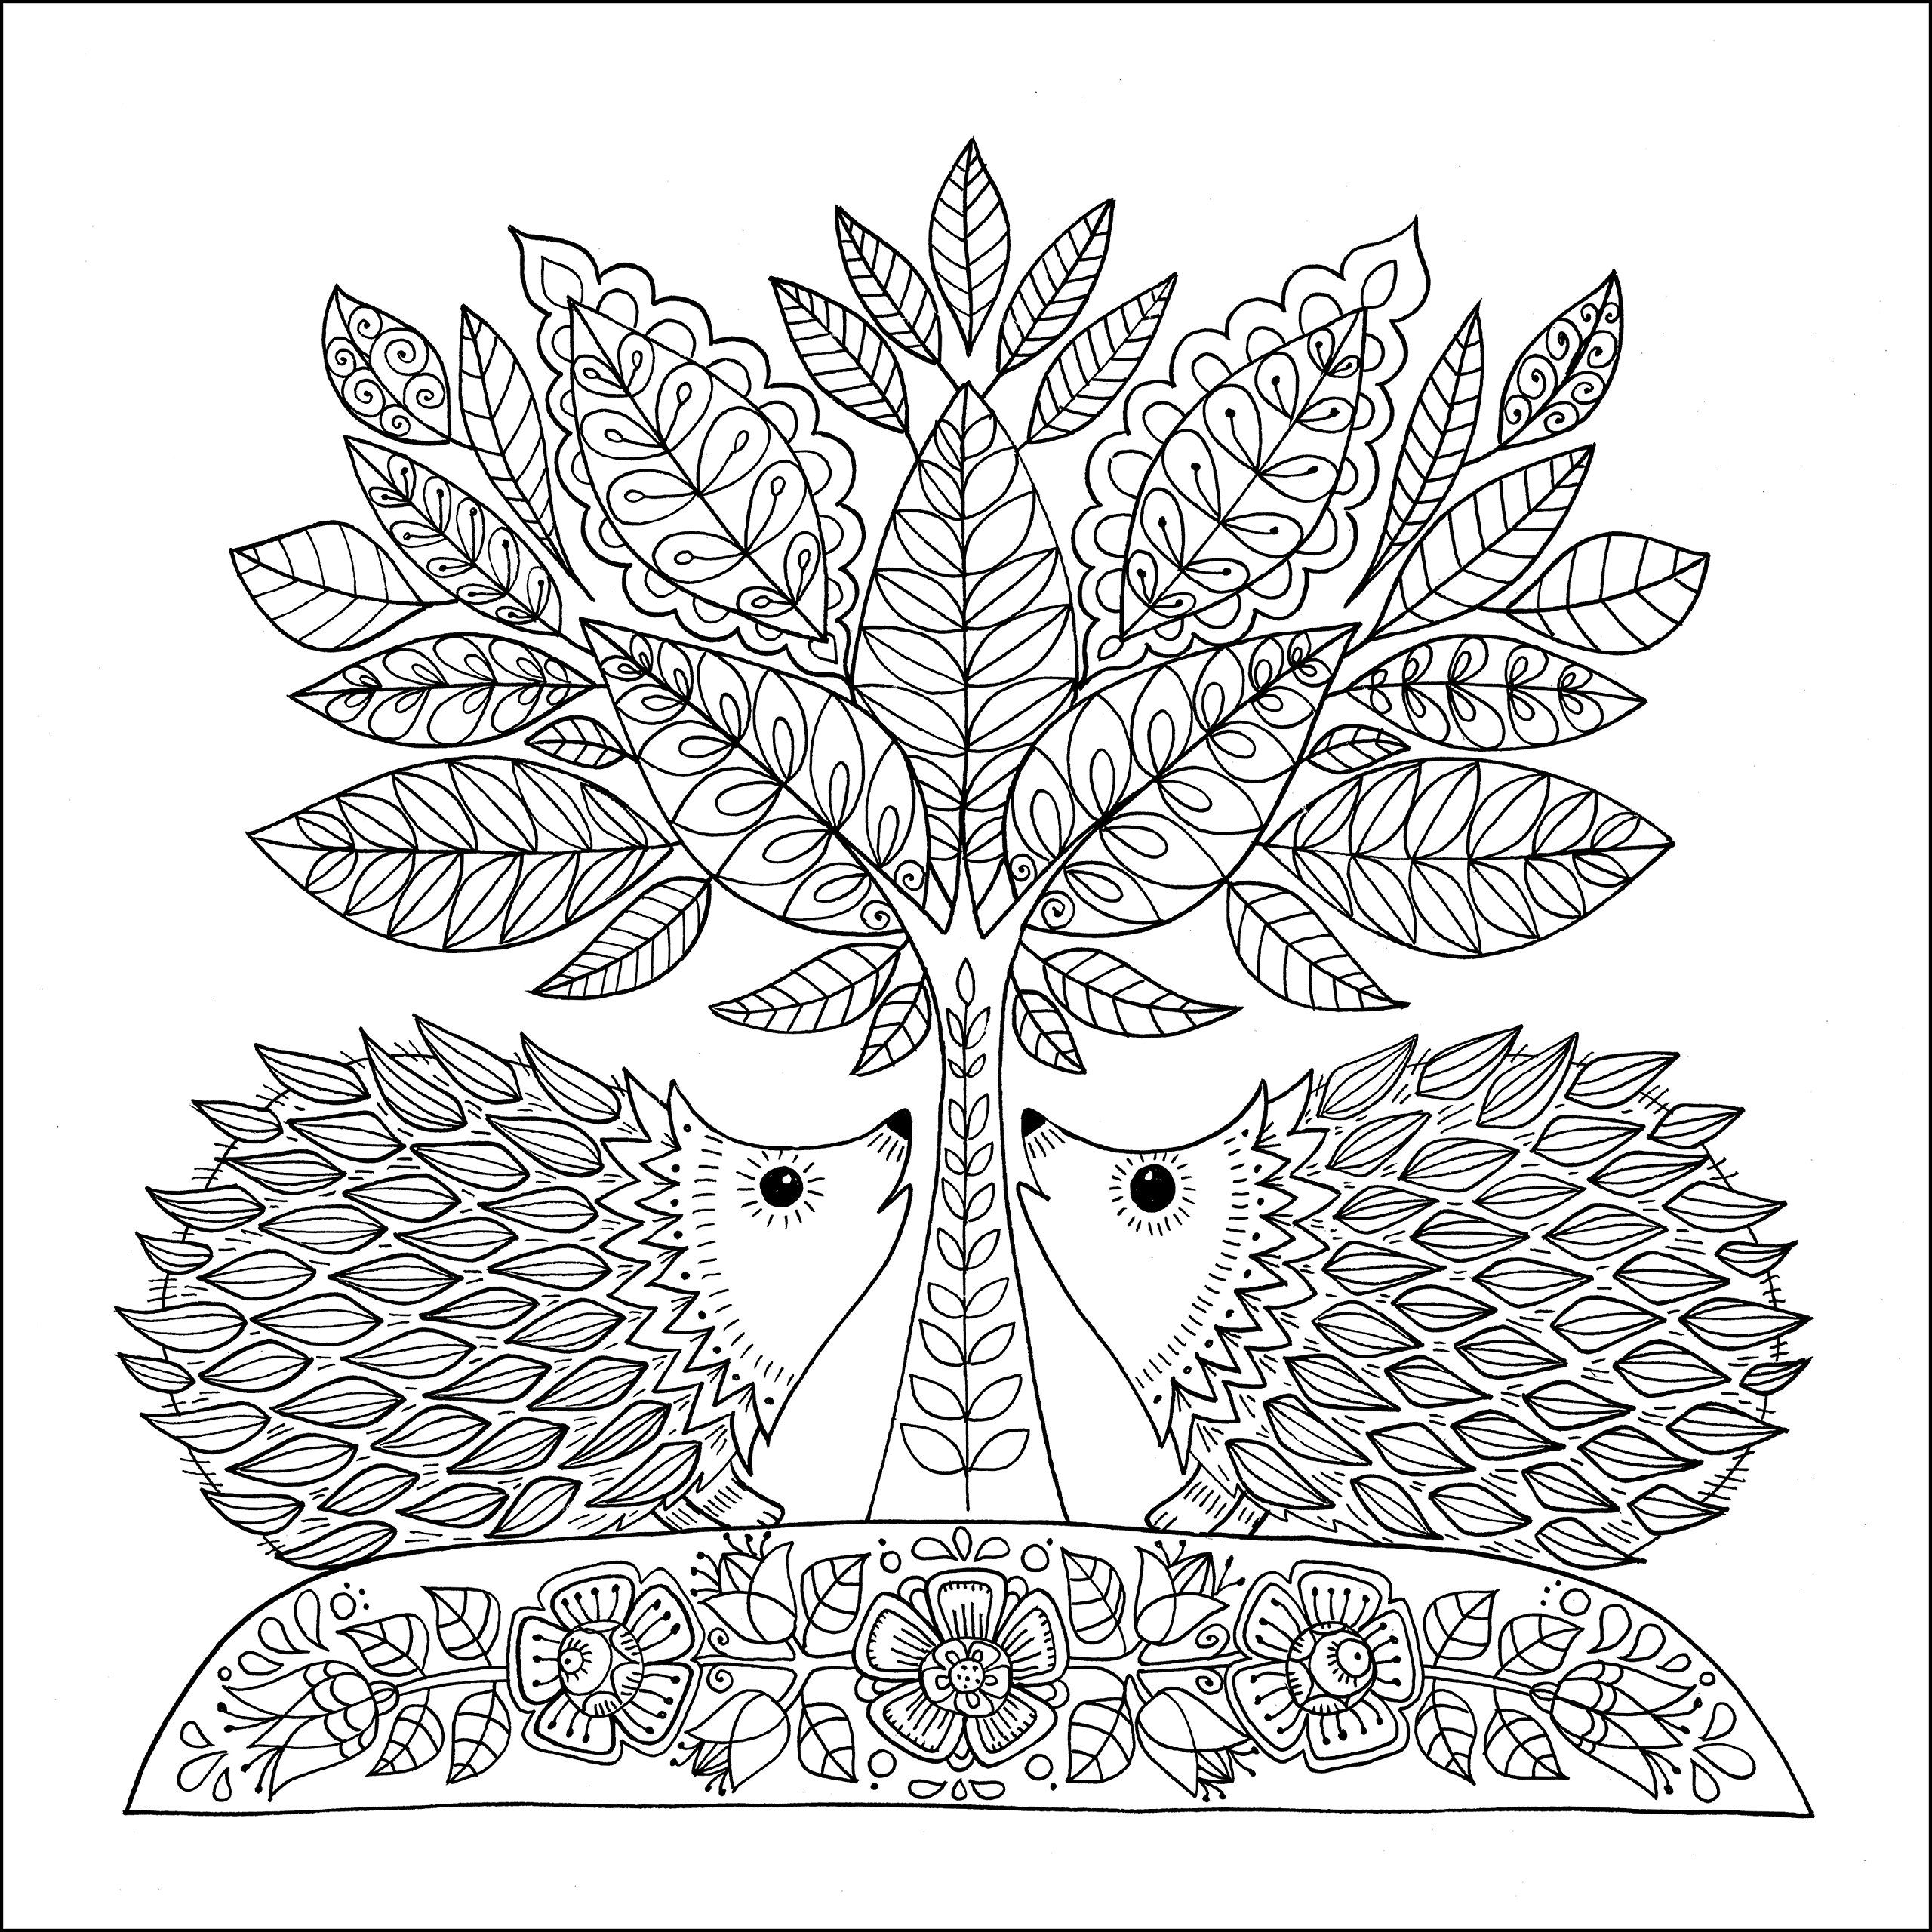 Wonders of Creation Coloring Book: Illustrations to Color and ...